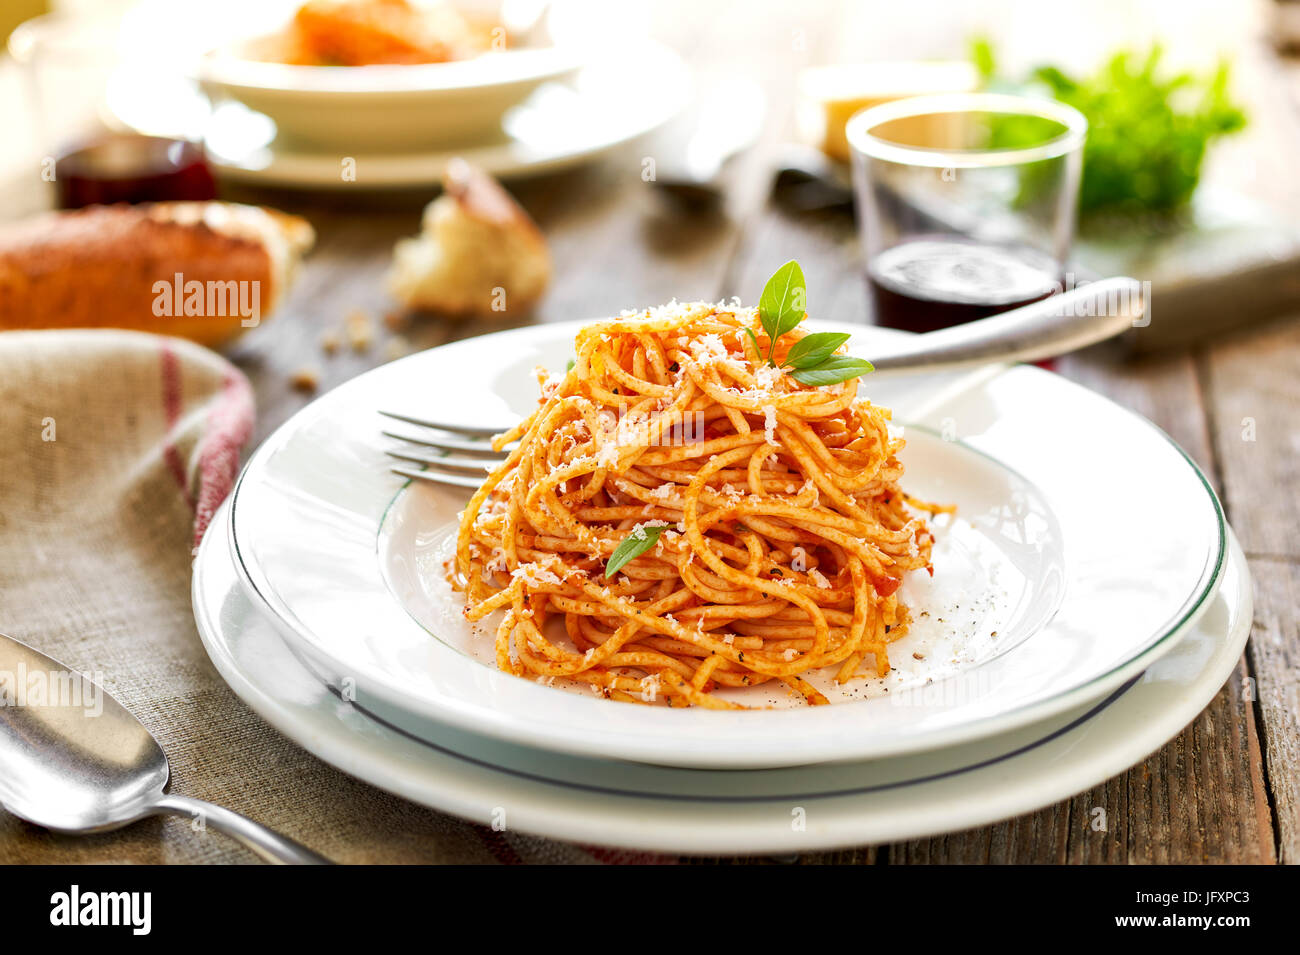 spaghetti with red sause Stock Photo